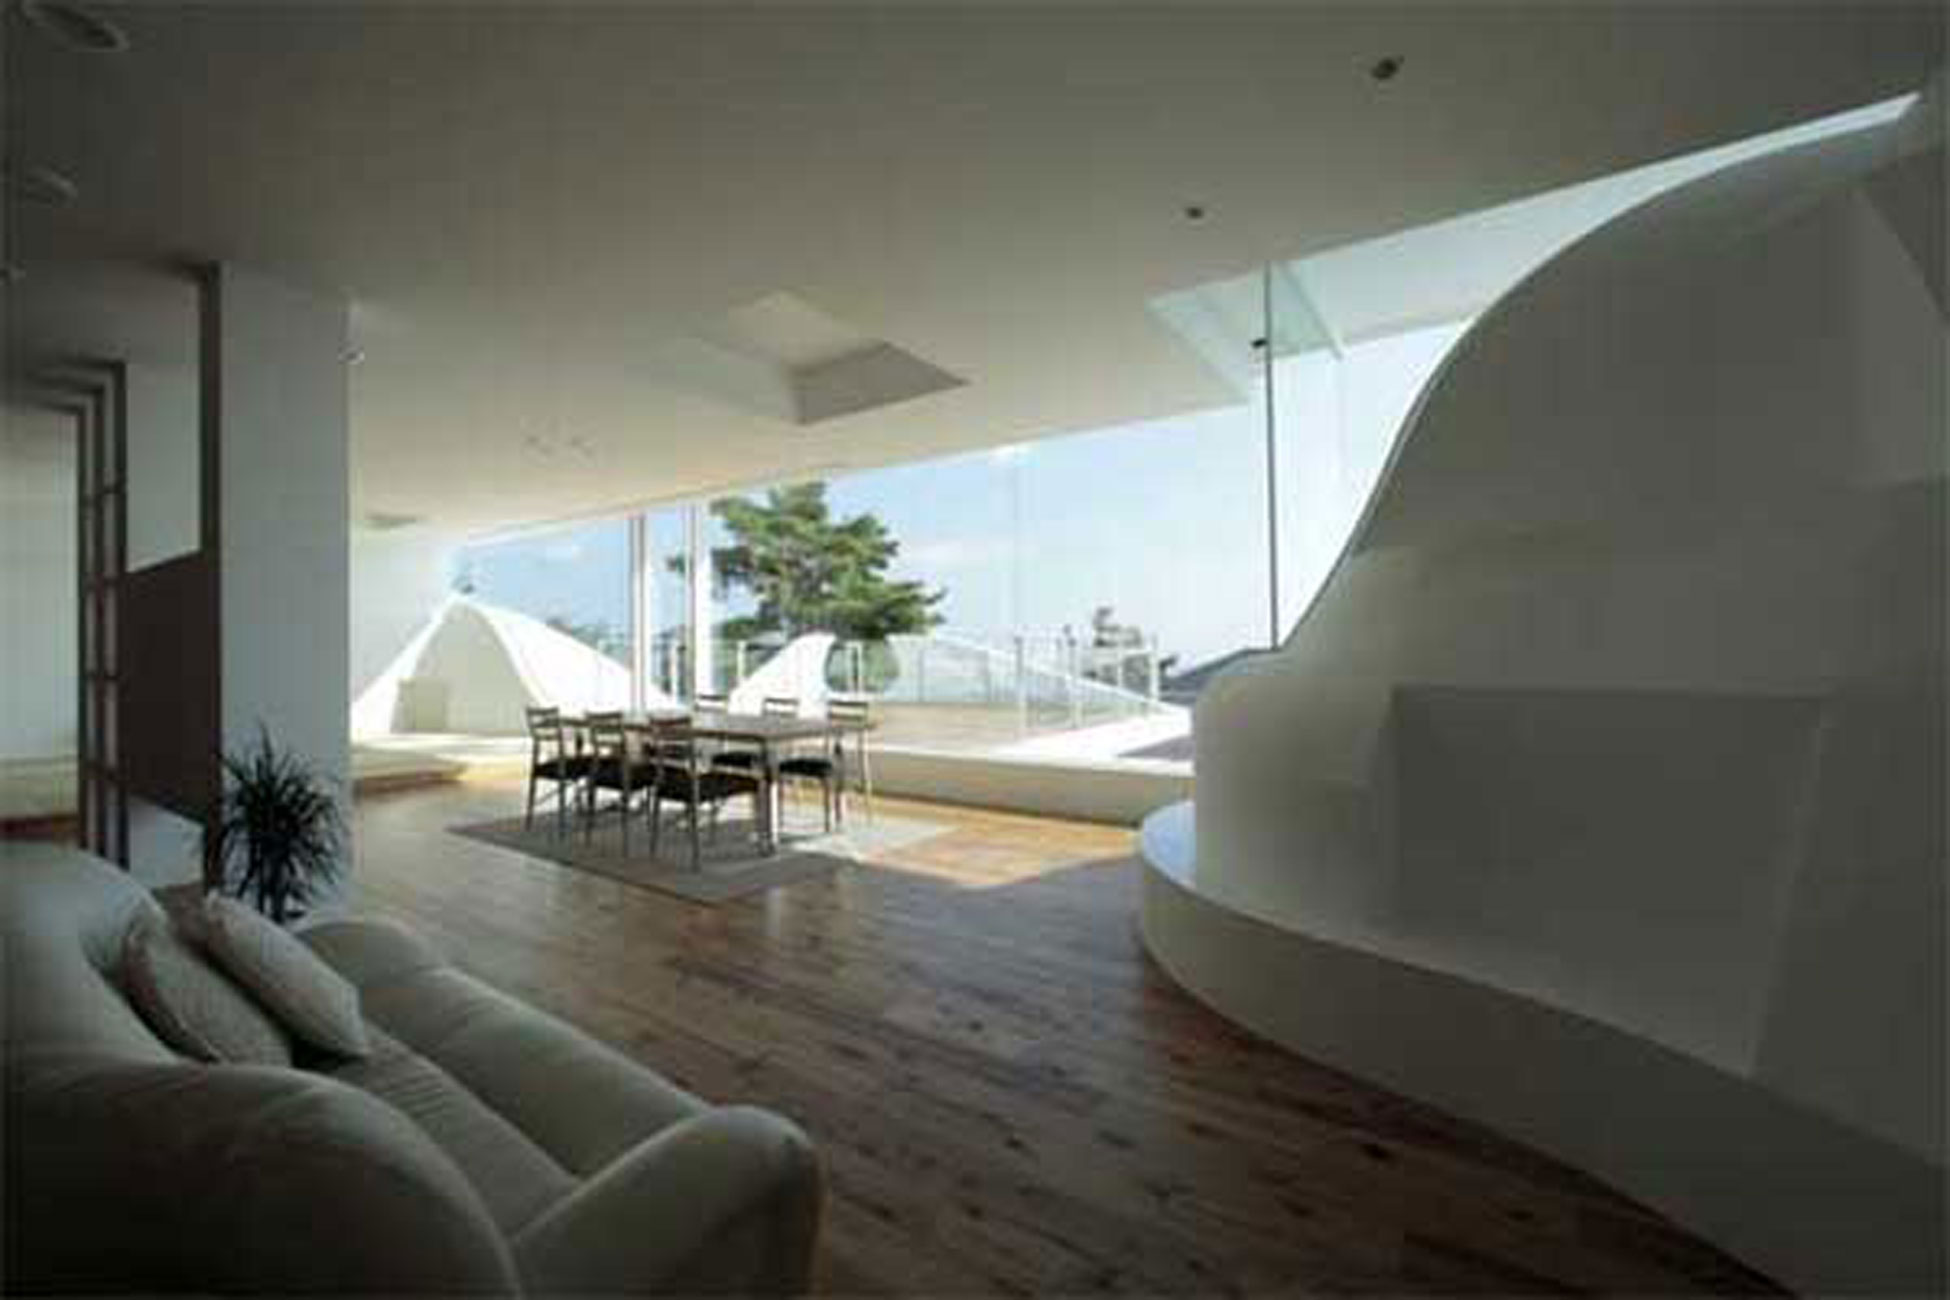 Japan Architect Design, Fabulous Mountain House in Hyogo - Interior